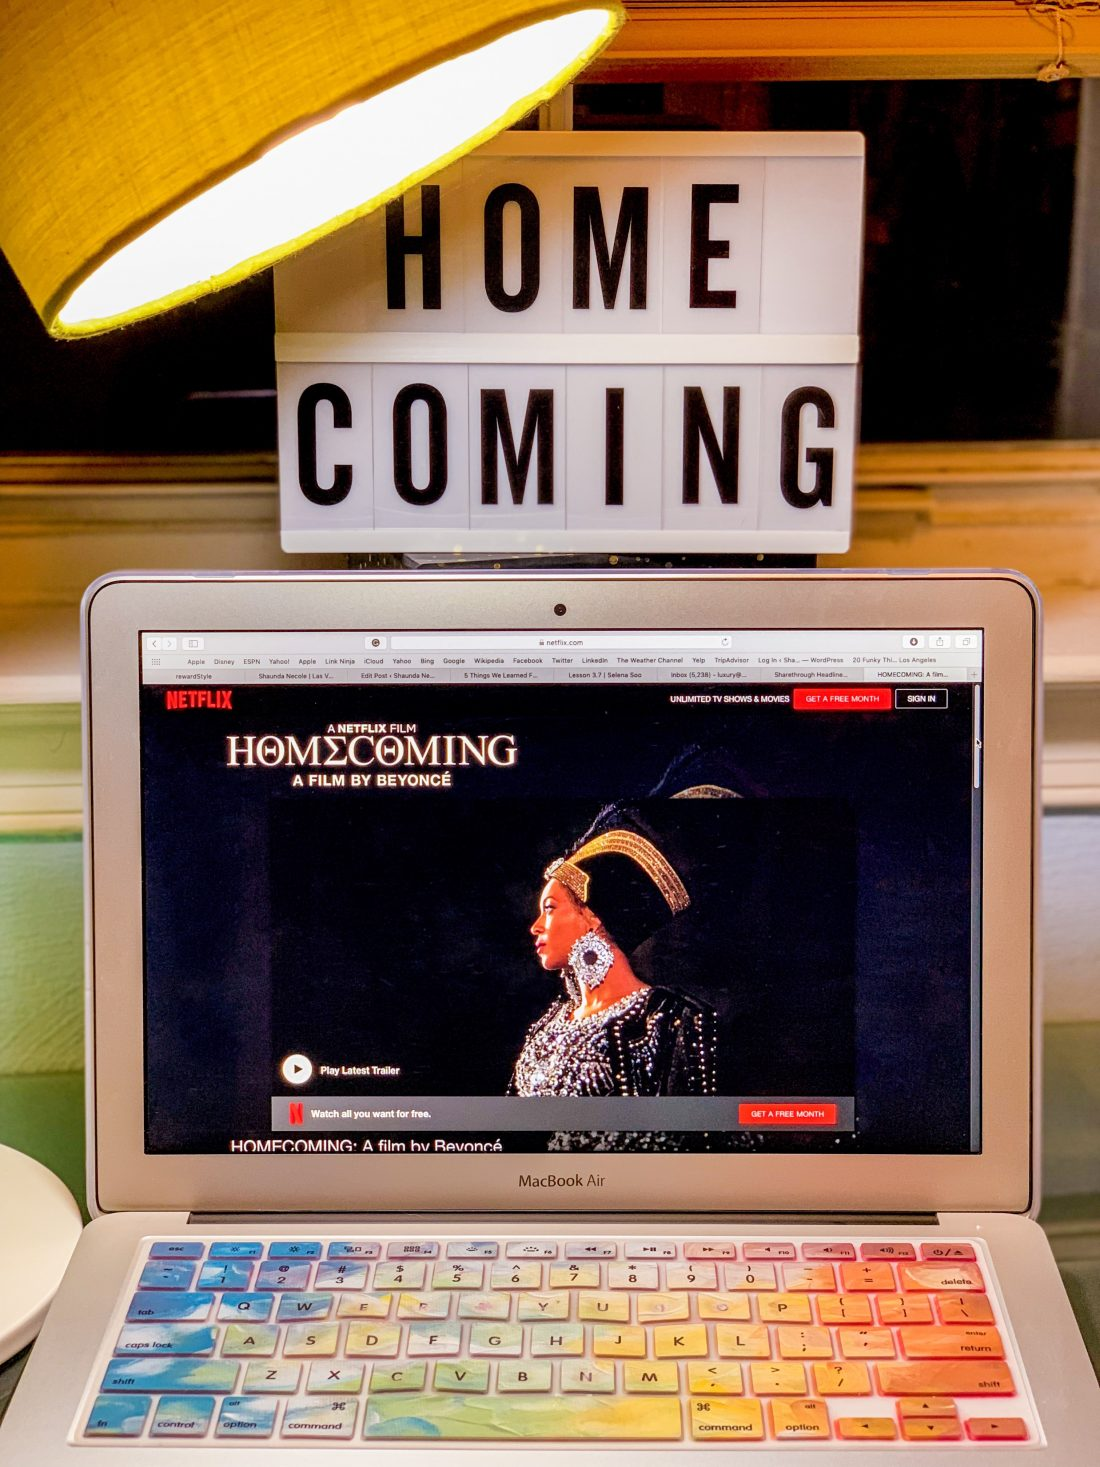 Shaunda Necole on Thrive Global- 5 Things We Learned From Beyoncé's Homecoming Movie